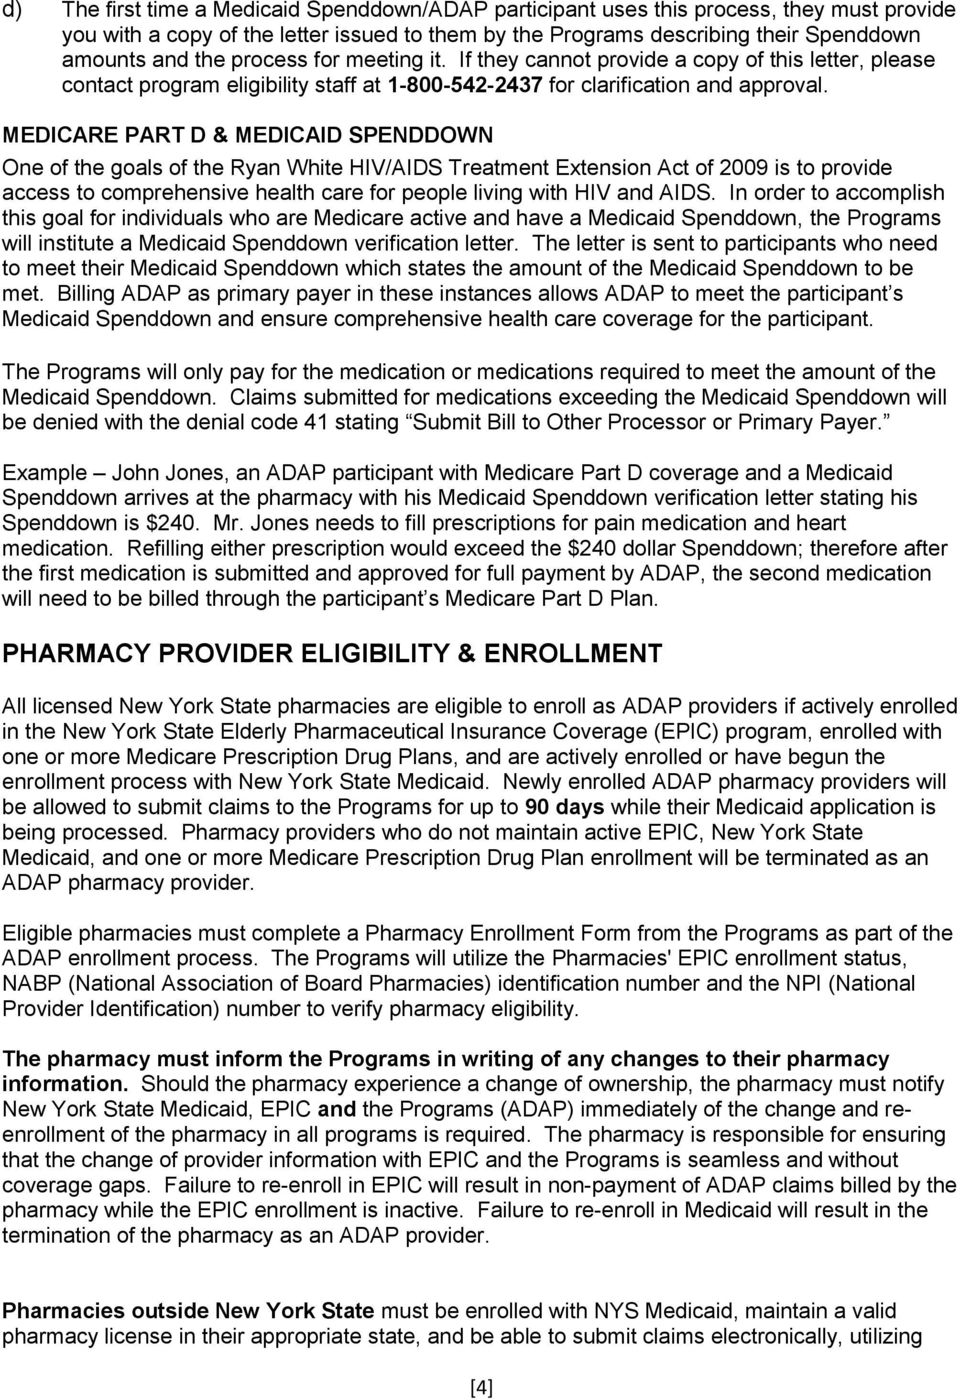 MEDICARE PART D & MEDICAID SPENDDOWN One of the goals of the Ryan White HIV/AIDS Treatment Extension Act of 2009 is to provide access to comprehensive health care for people living with HIV and AIDS.